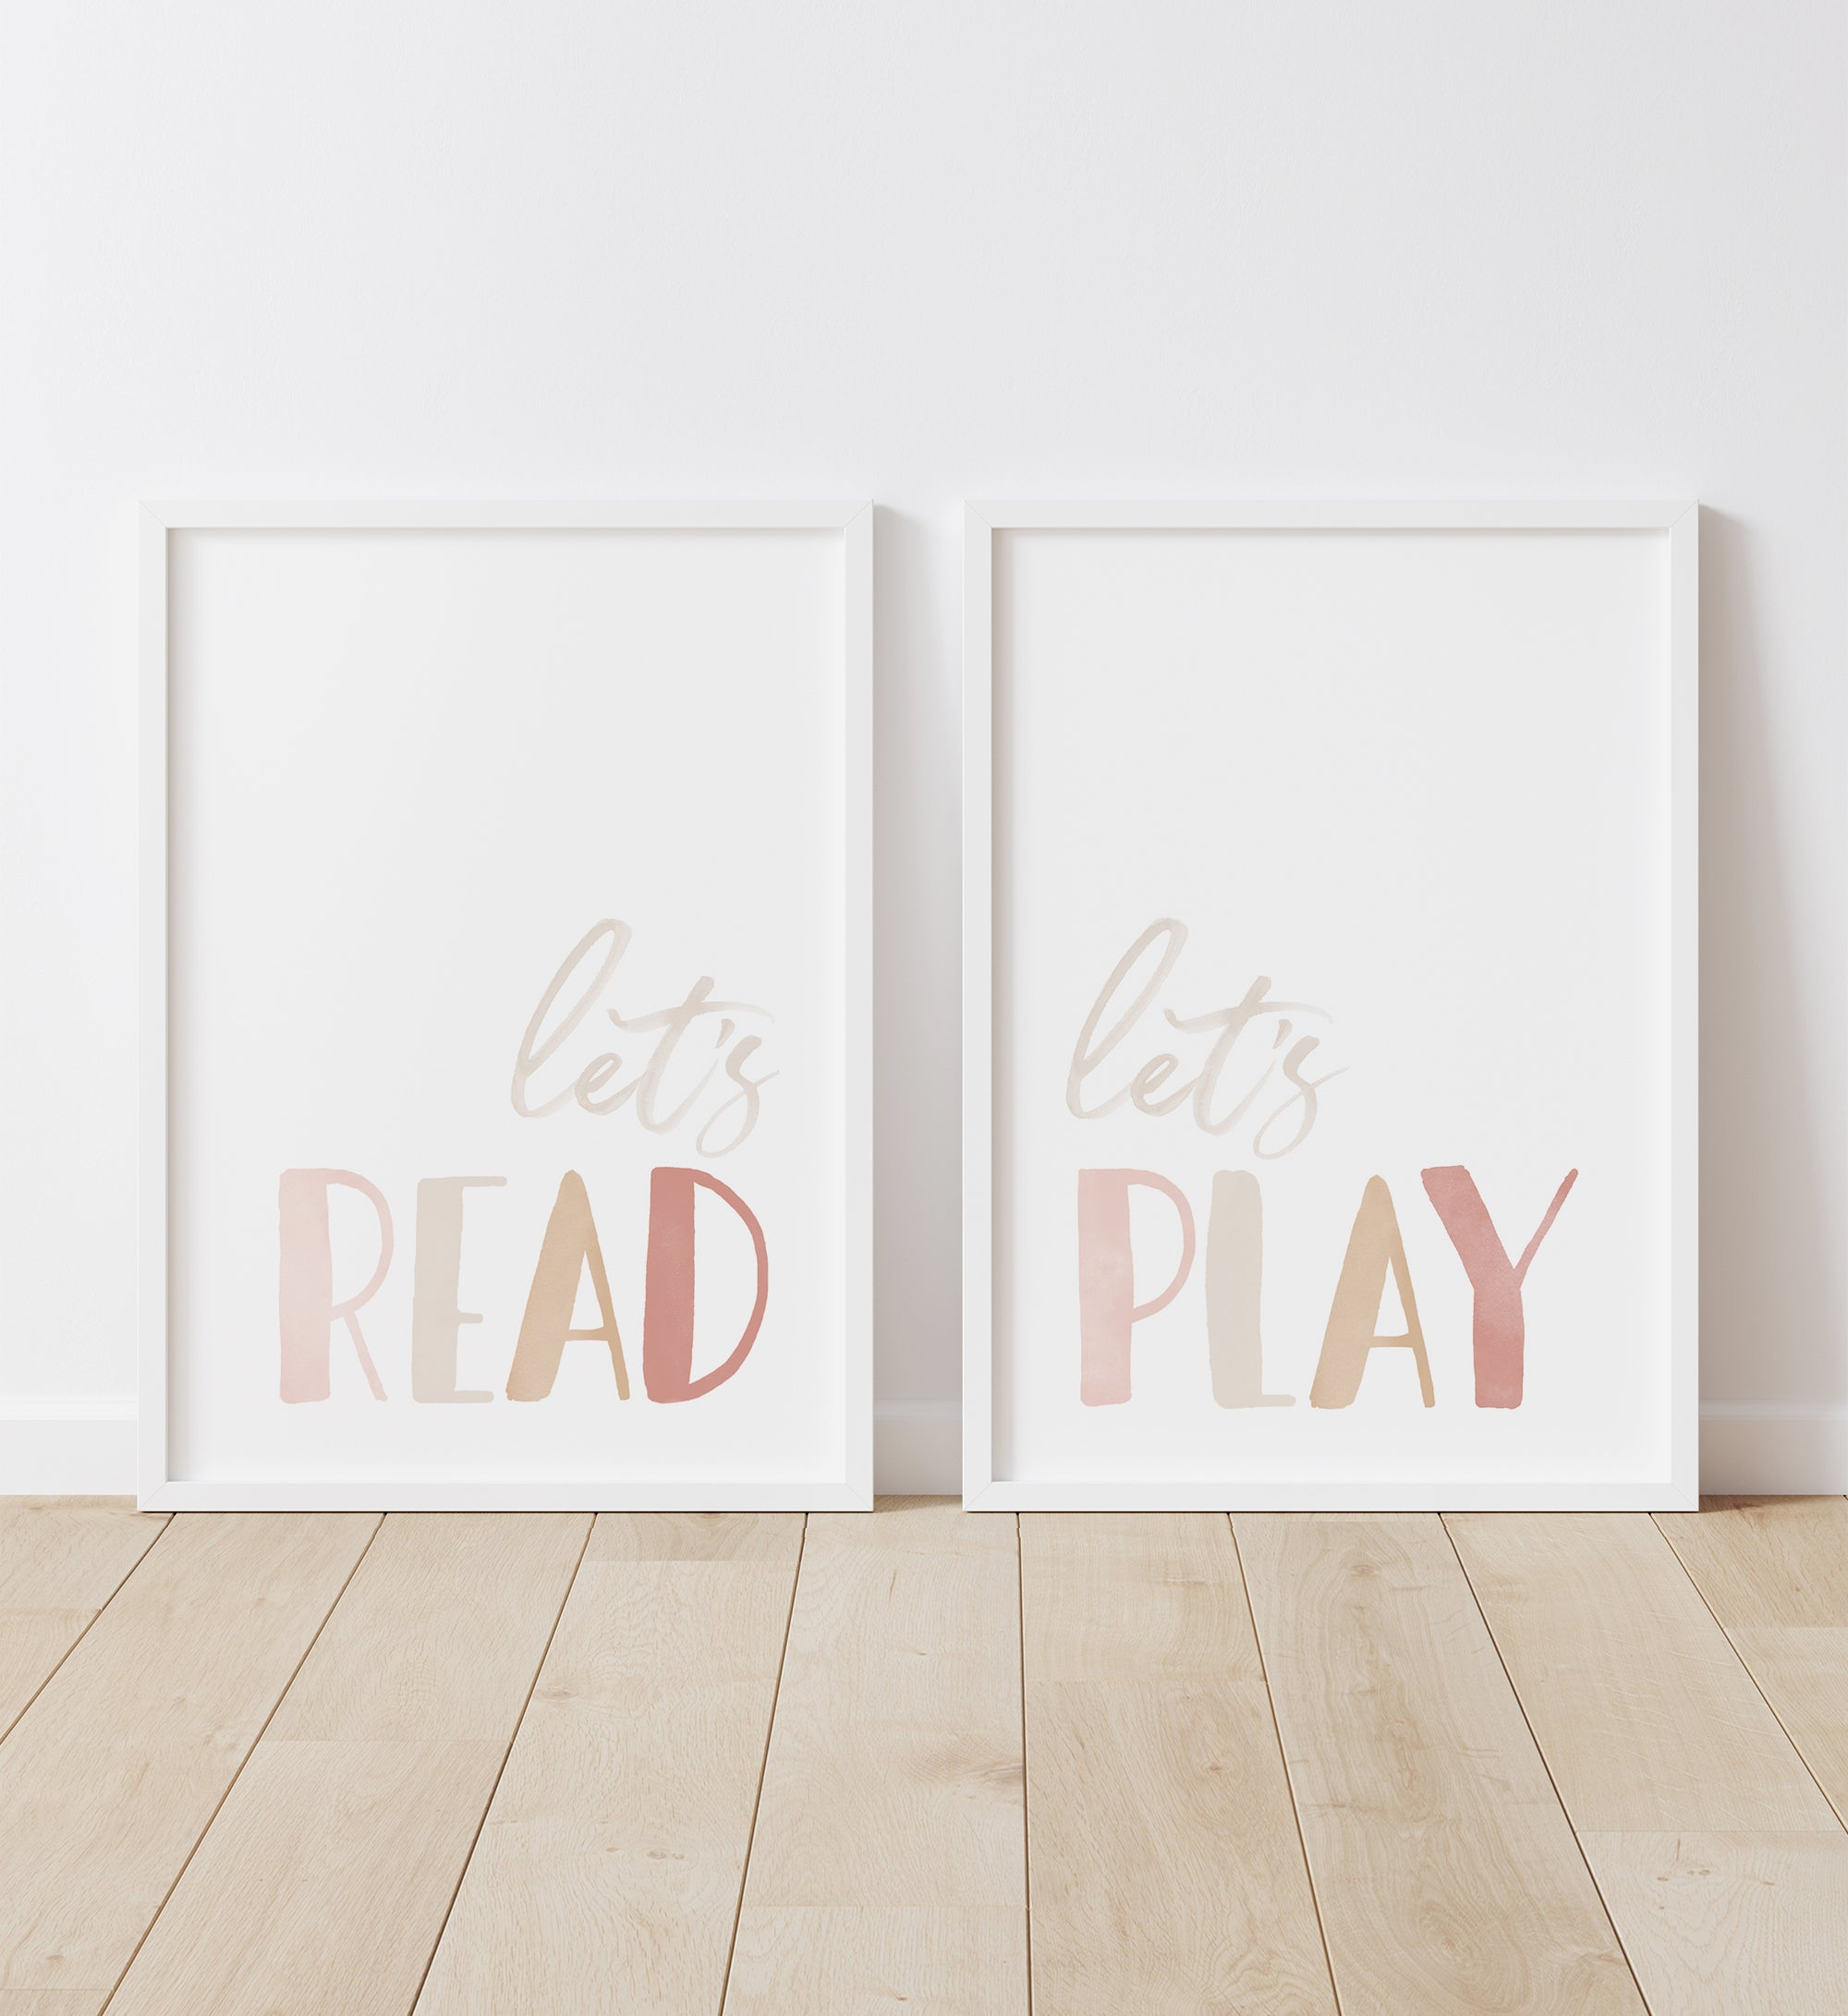 Let's Read, Let's Play - Pink and Neutral